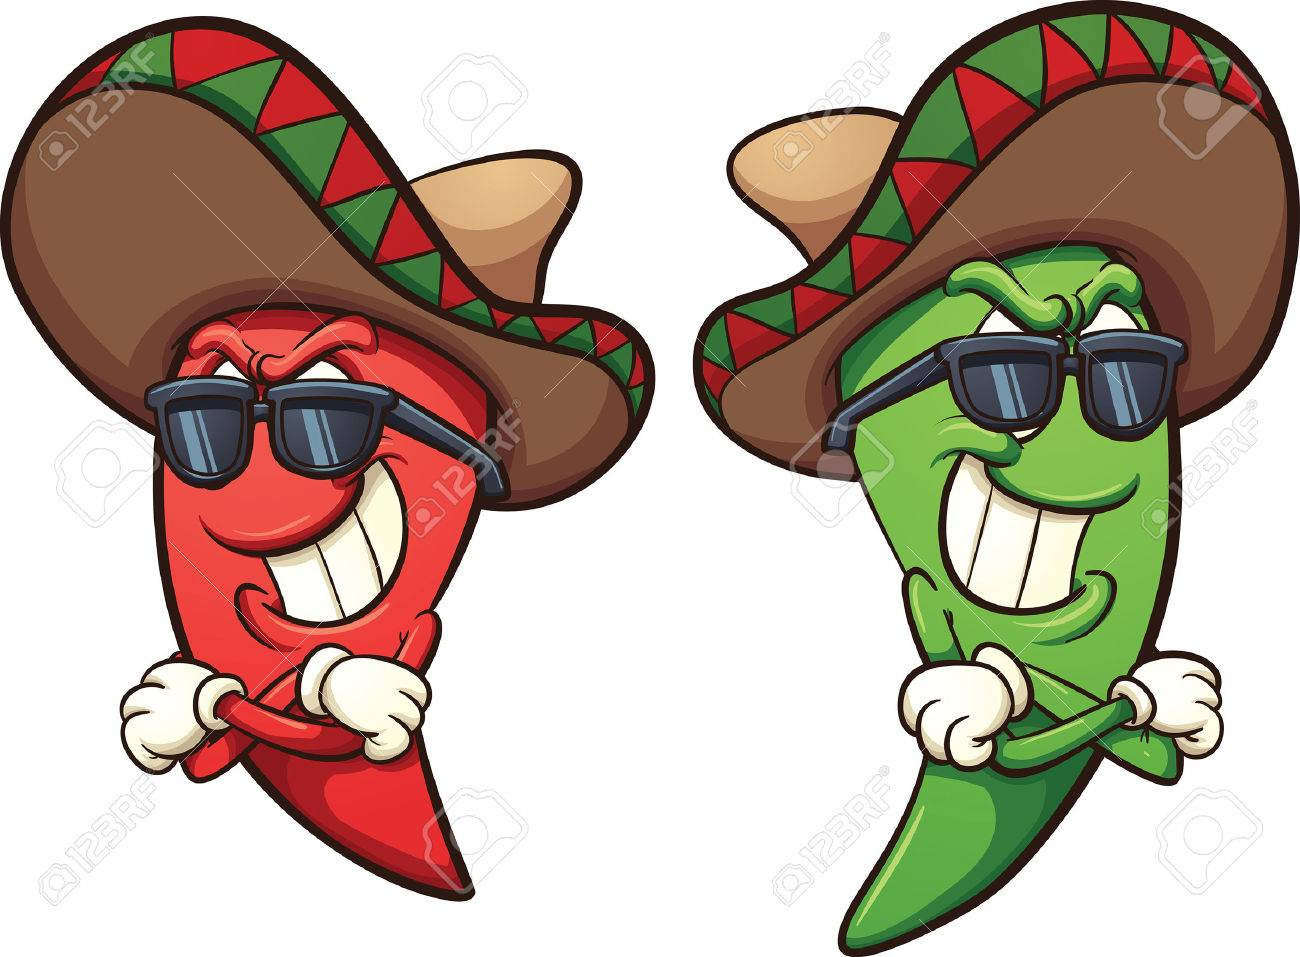 hight resolution of mexican red and green chili peppers vector clip art illustration with simple gradients shades